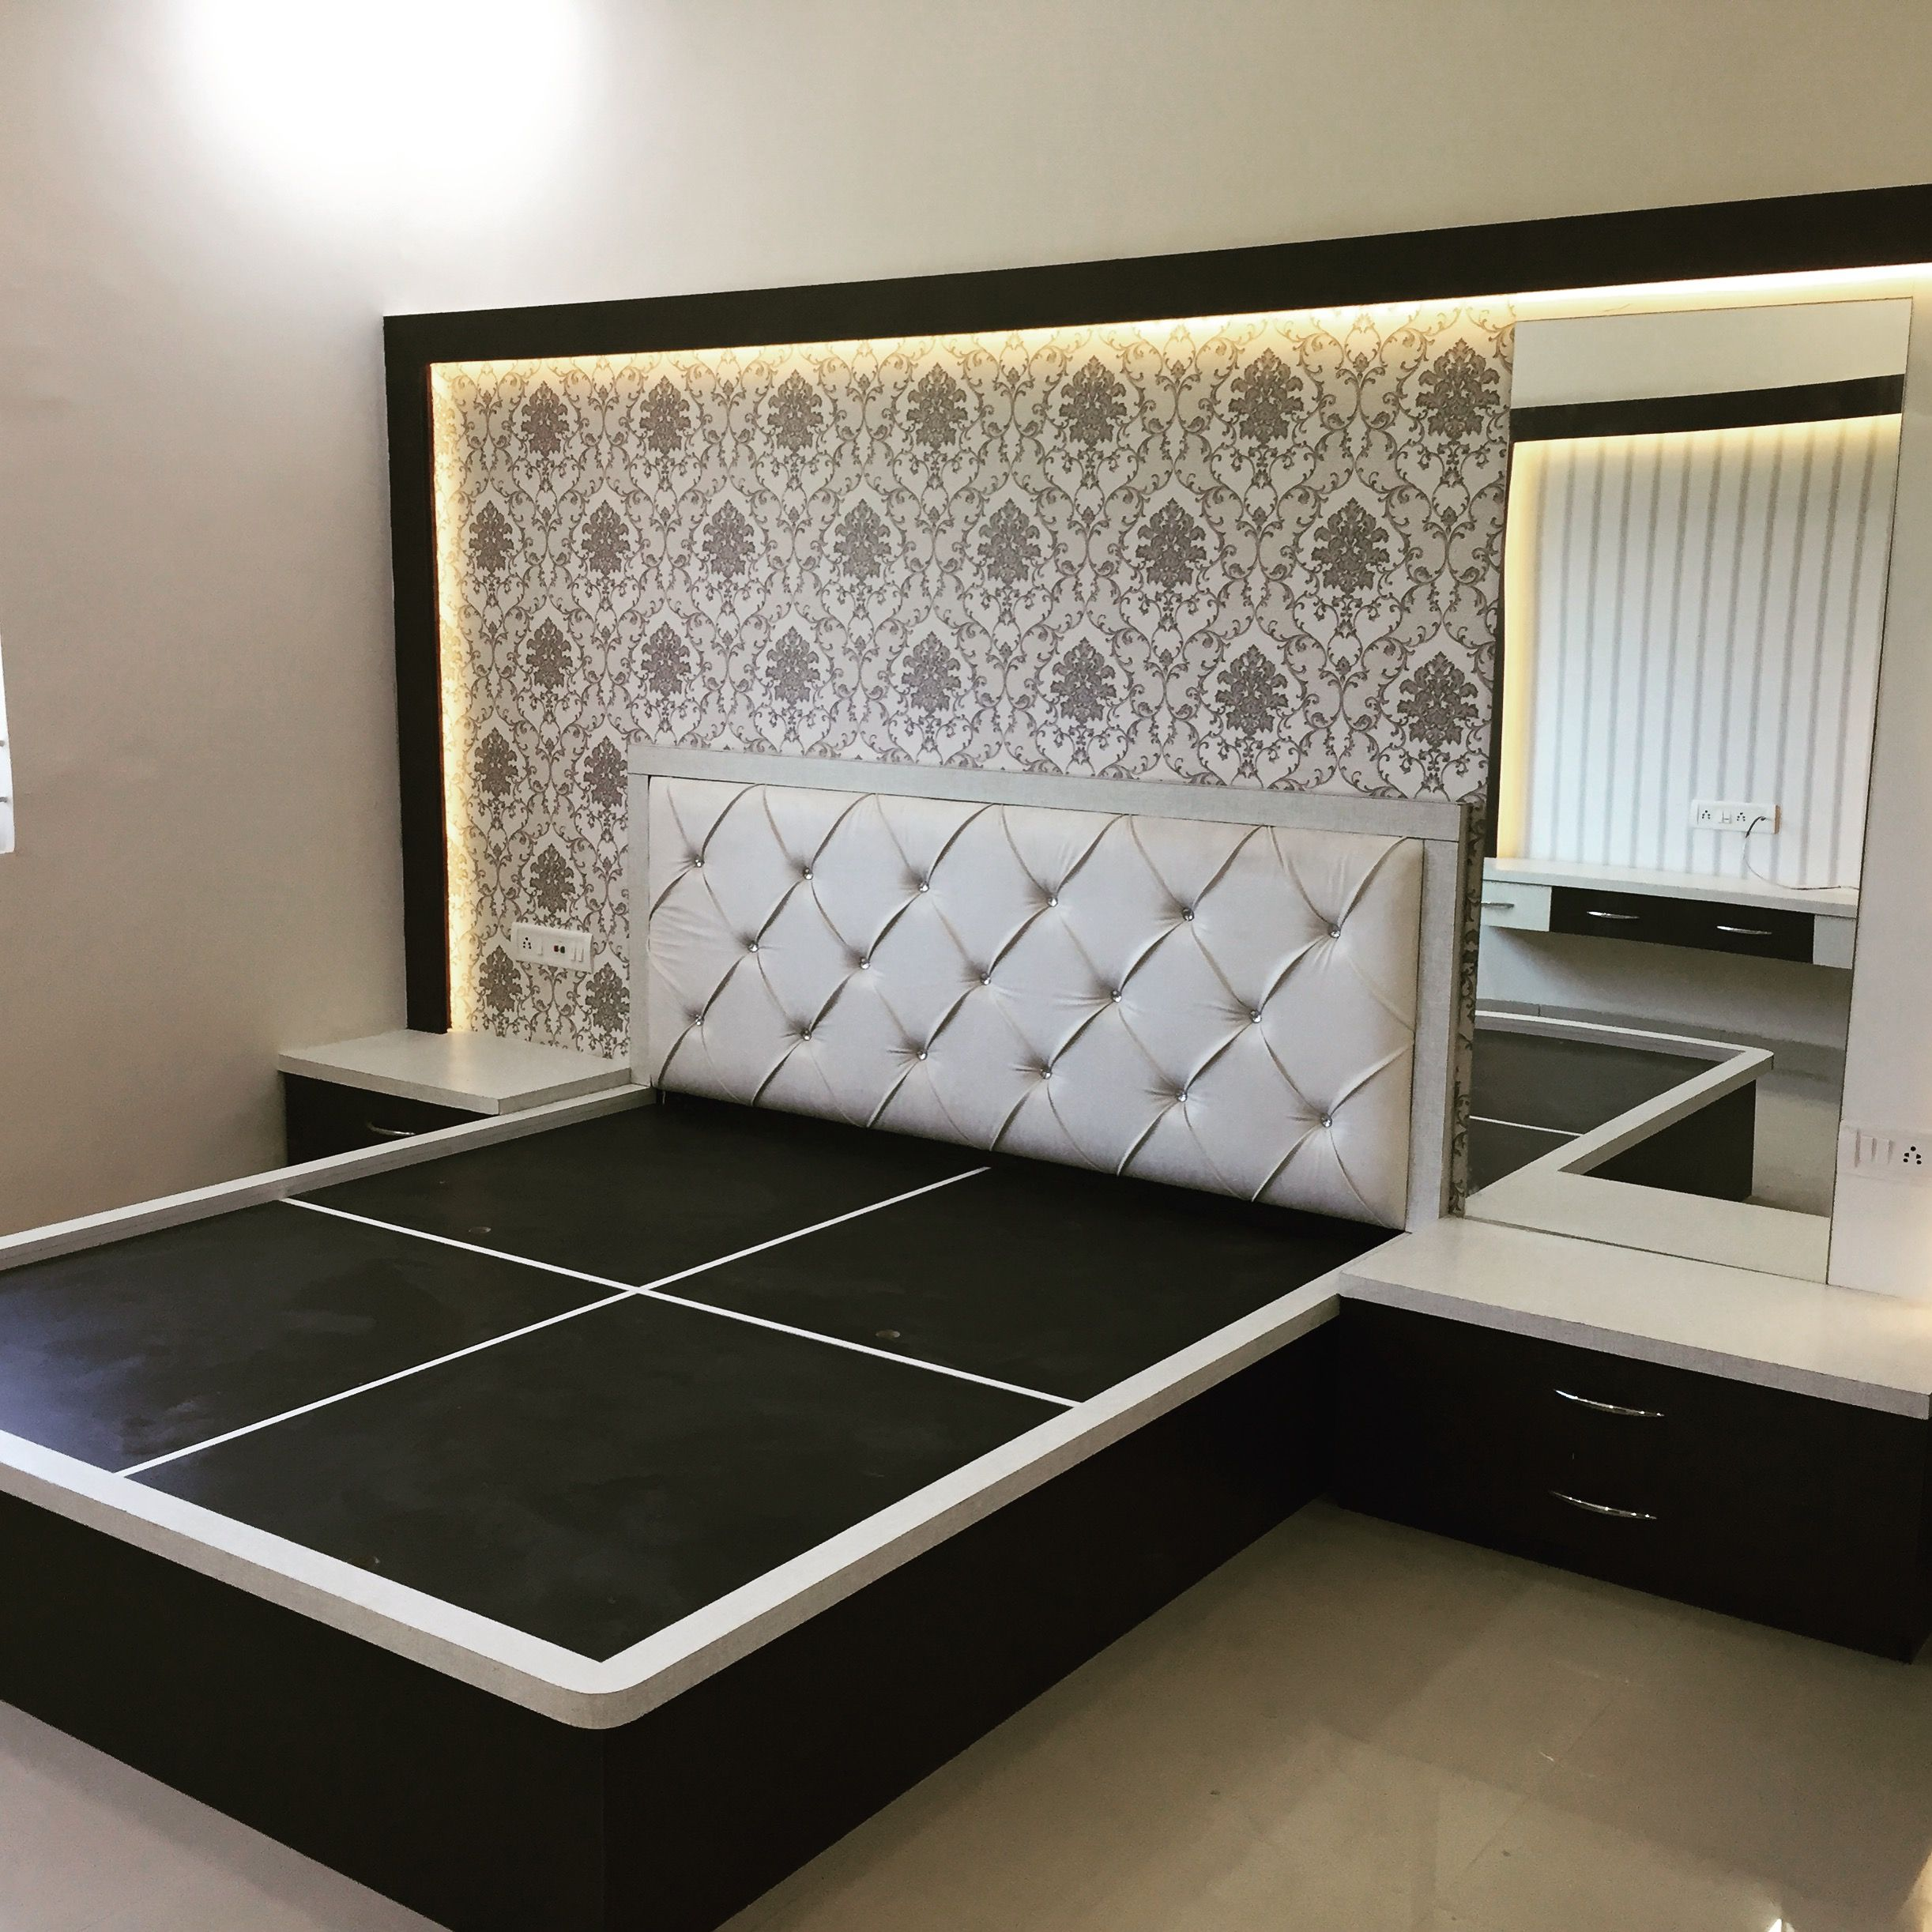 Kamar set  Bedroom furniture design, Bed design modern, Bed